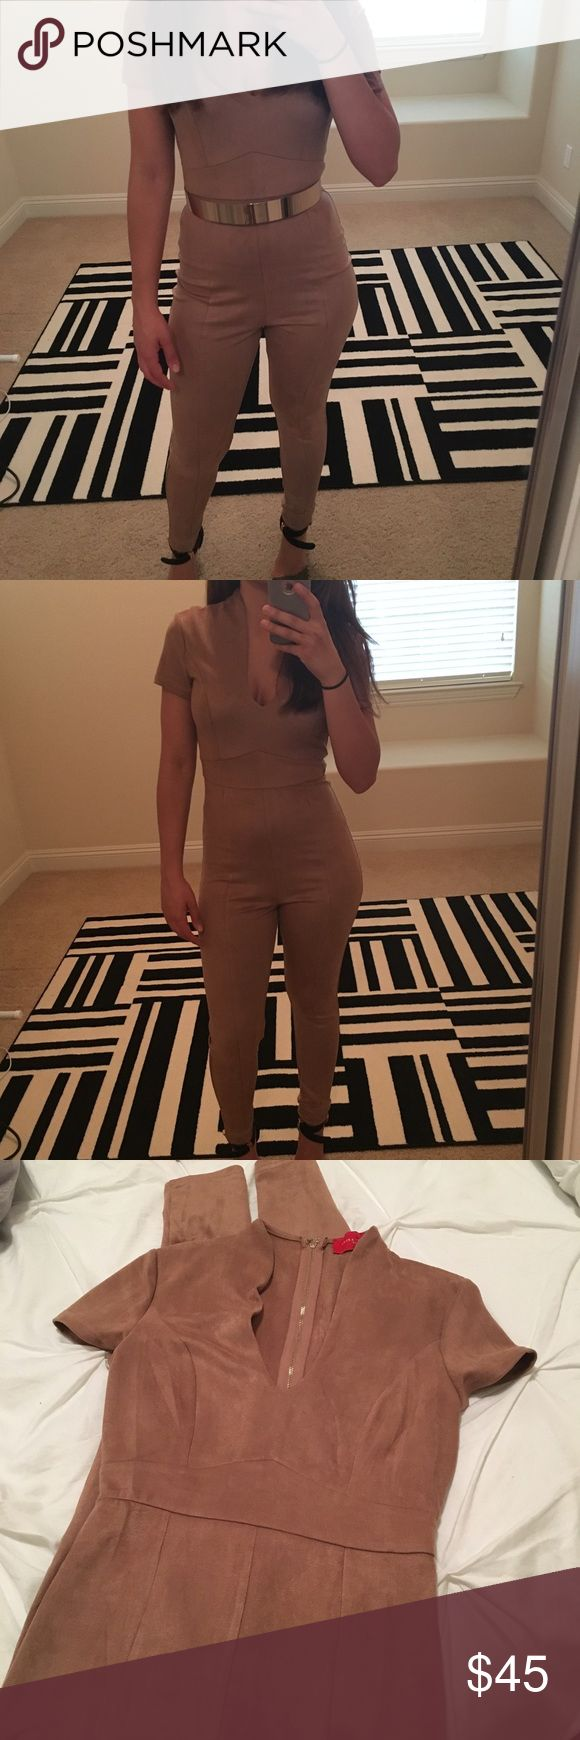 Akira camel jumpsuit Never worn (only to model). Suede like material. Does not come with the belt. Size medium, but fits like a US 4-6. AKIRA Pants Jumpsuits & Rompers